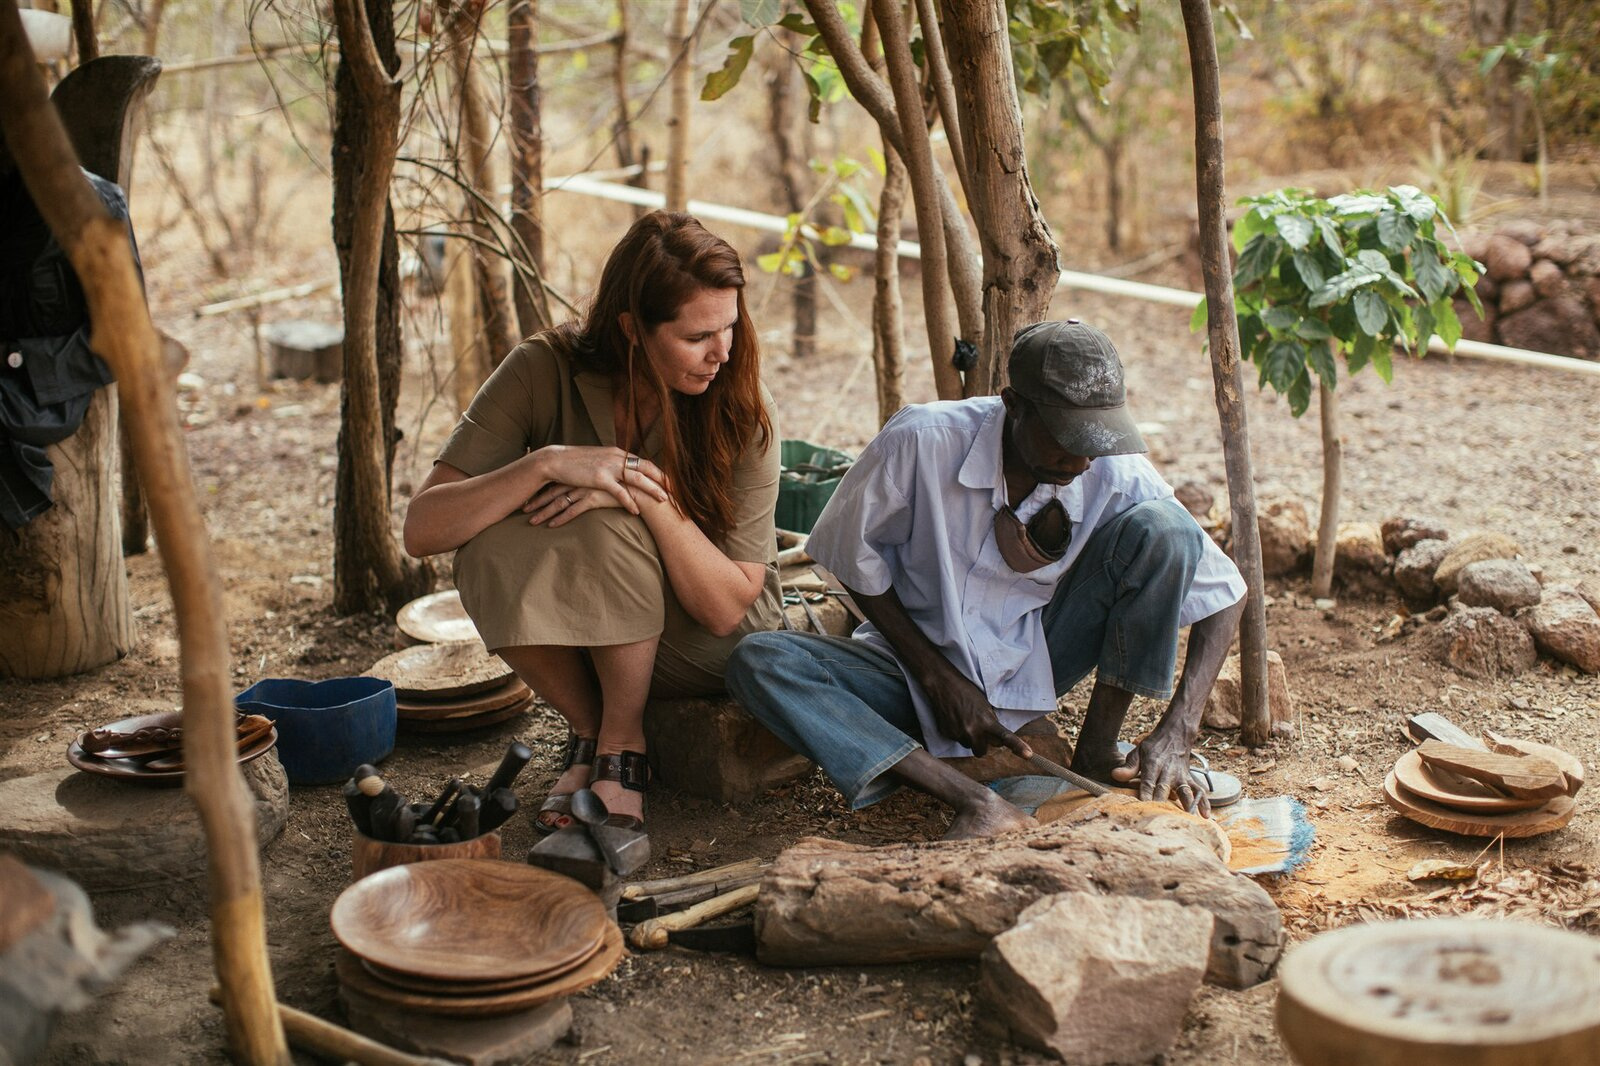 Treana Peake, founder of Obakki and seen here with Amadou, partners with traditional artisans and rural co-ops to create unique, handcrafted goods in small quantities.   Photo 3 of 11 in Obakki's New Collection of Handcrafted Bowls and Spoons Reveals the Beauty of Slow Design